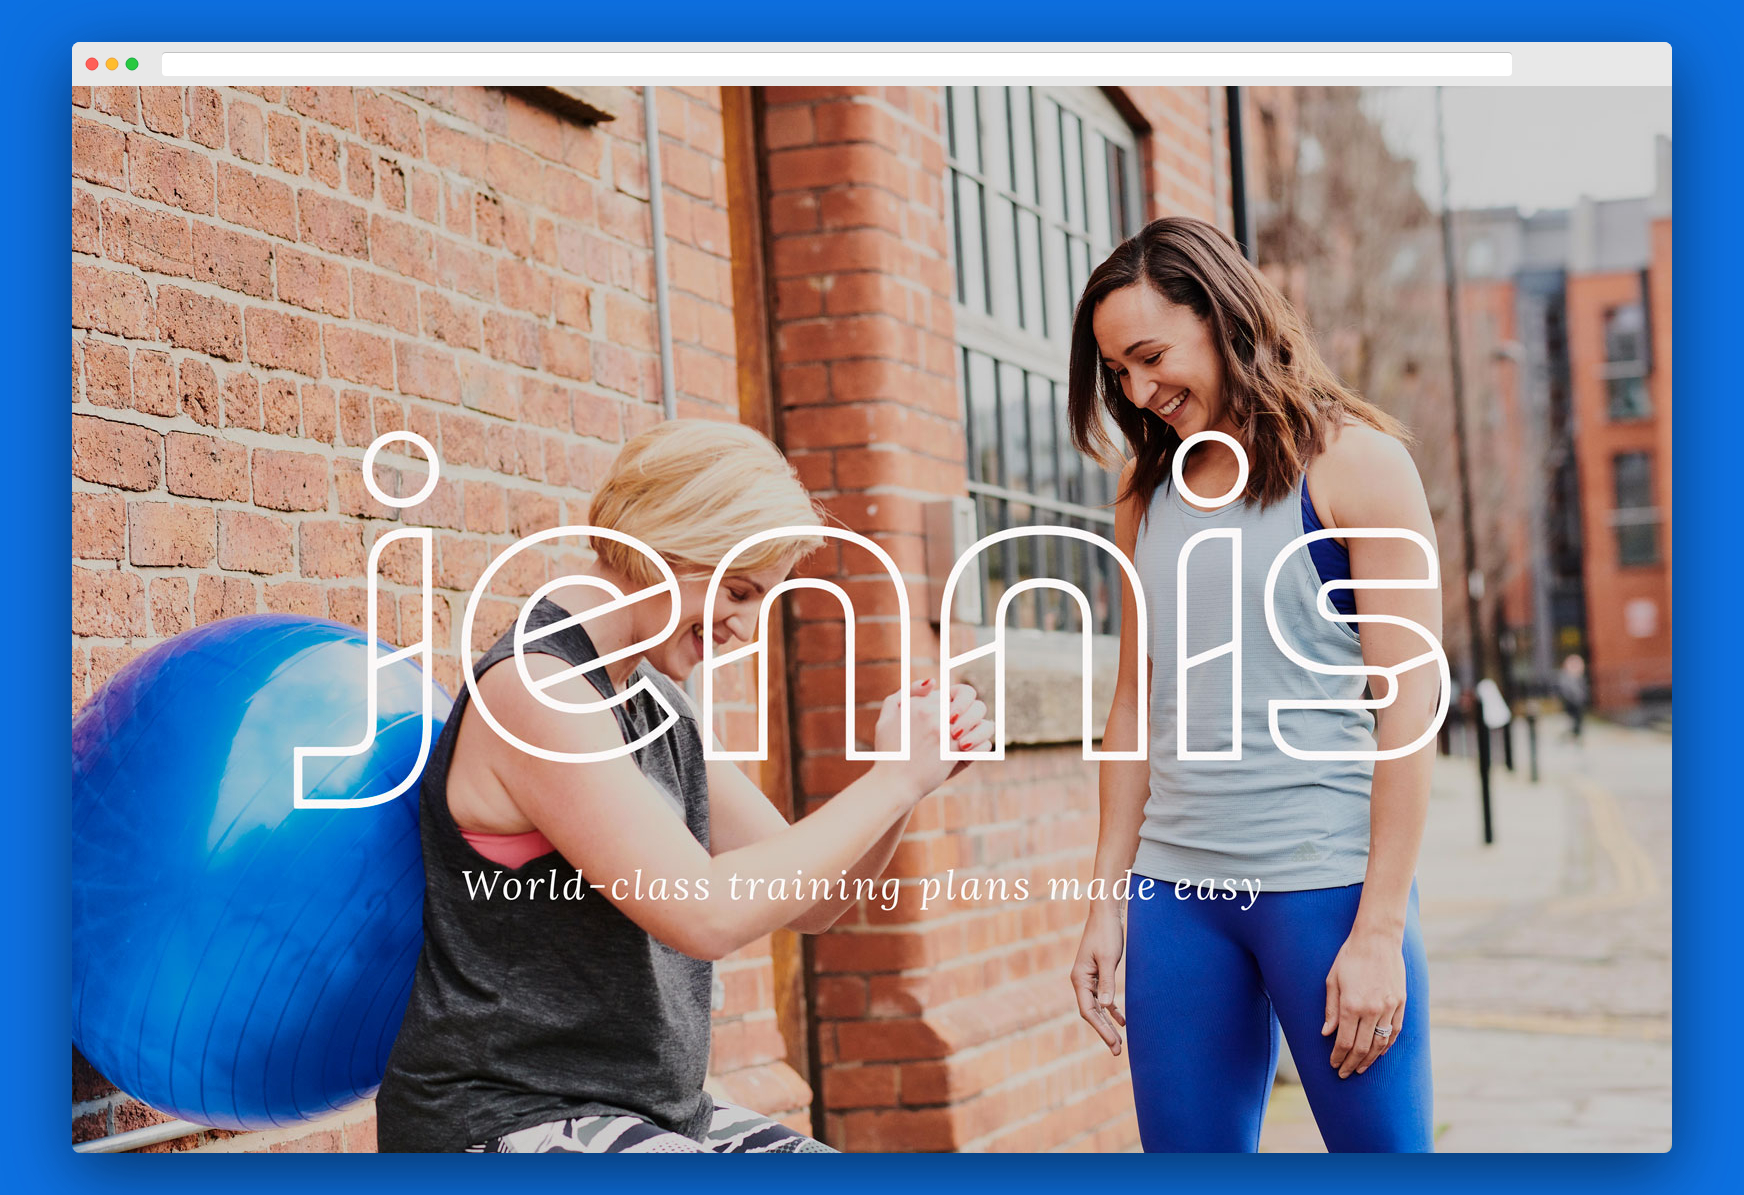 Find out first - Be the first to download the Jennis app, check out the workout plans, enjoy Jessica's favourite recipes and receive exclusive invites to Jennis events.Visit: Jennisfitness.com